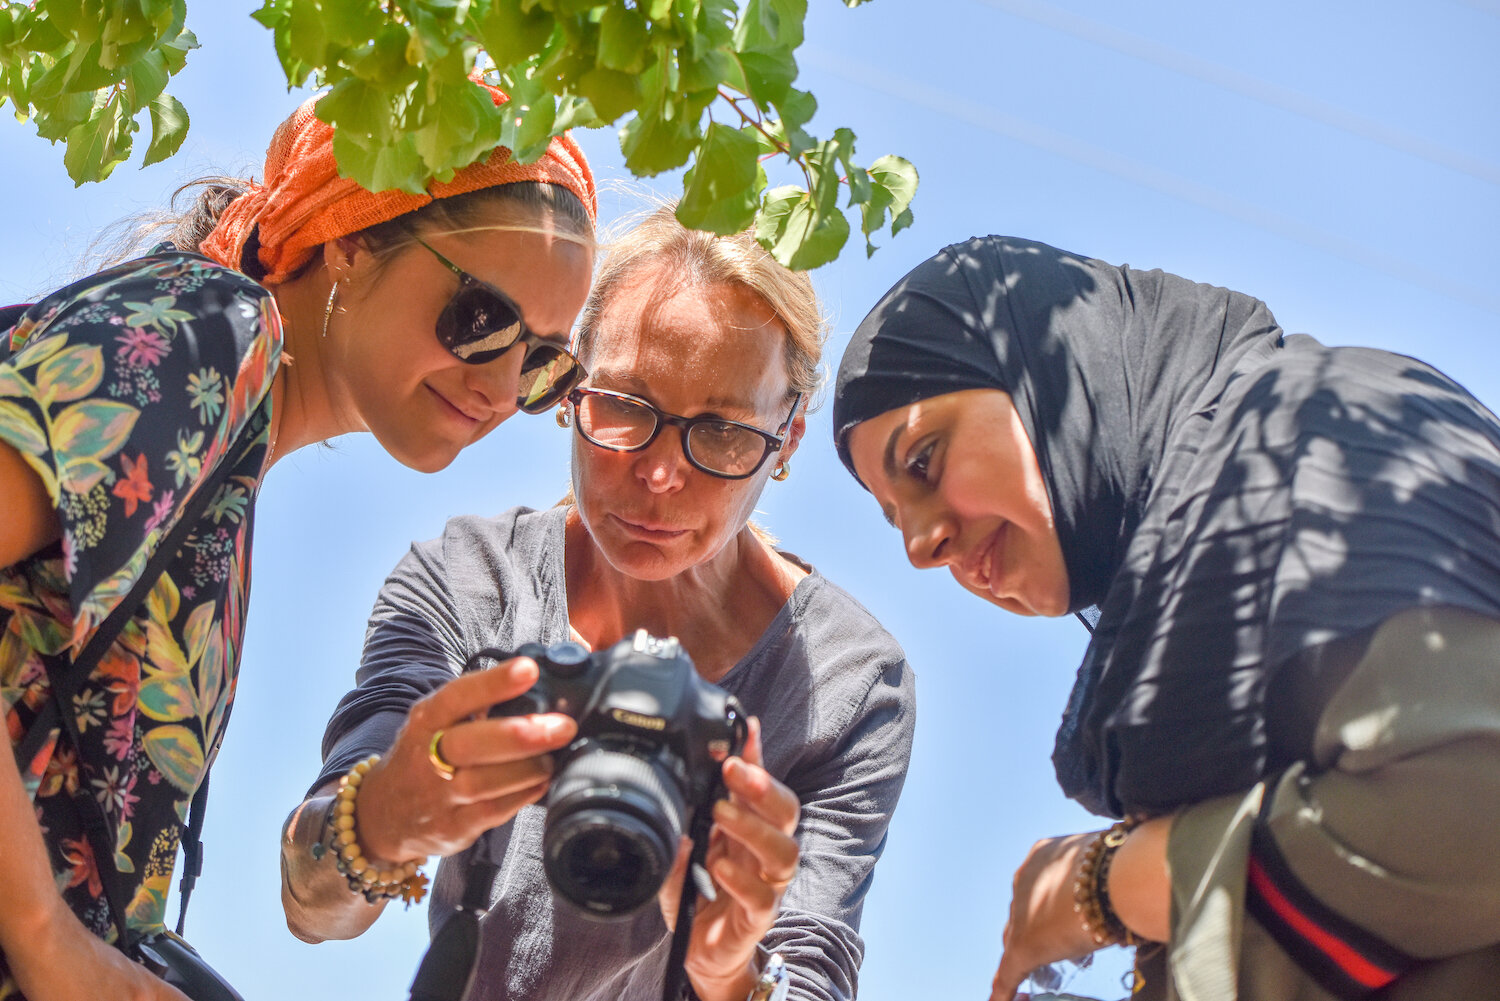 saskia-keeley-photography-humanitarian-photojournalism-documentarian-israel-and-palestine-peace-beyond-sides-towards-reconciliation-roots-non-violence-workshops-7.jpg